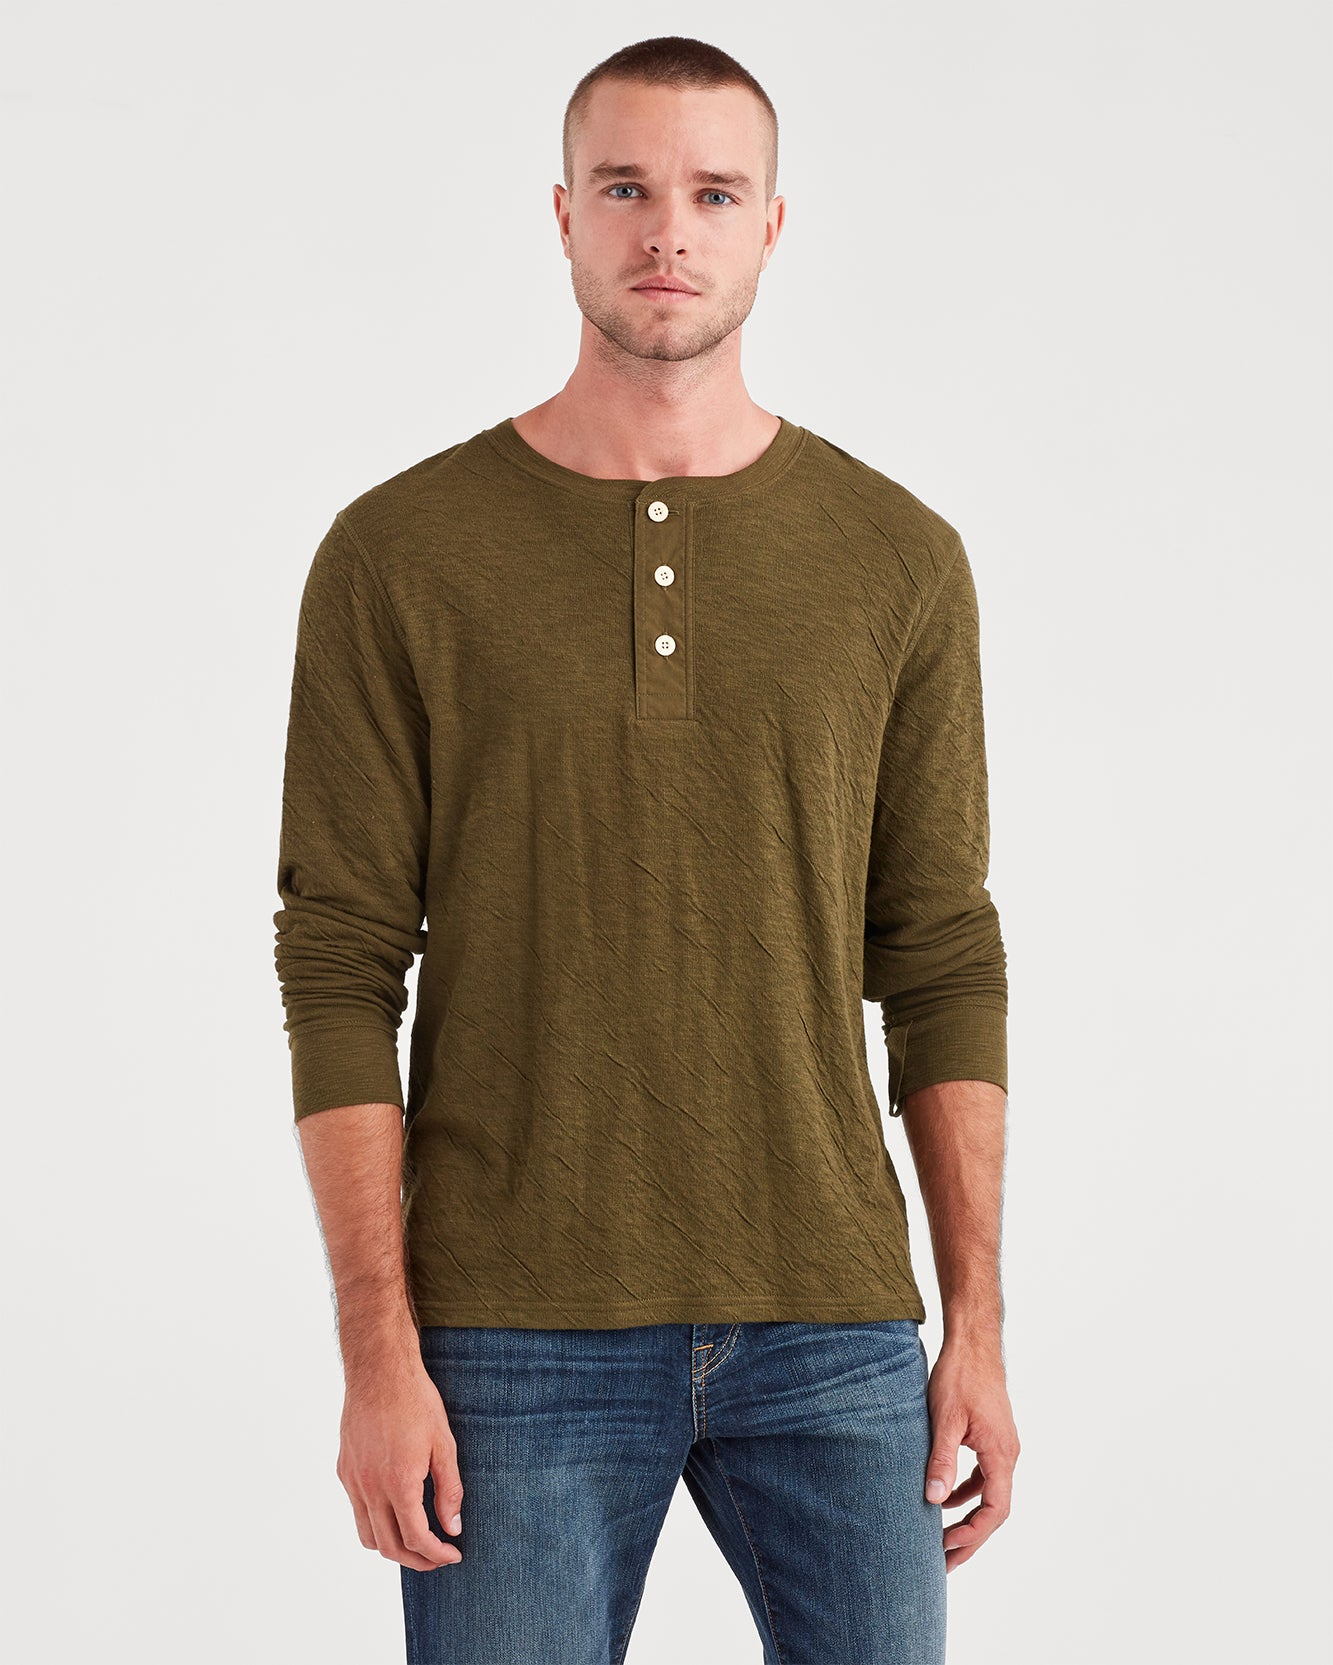 Image of Long Sleeve Army Henley in Military Olive